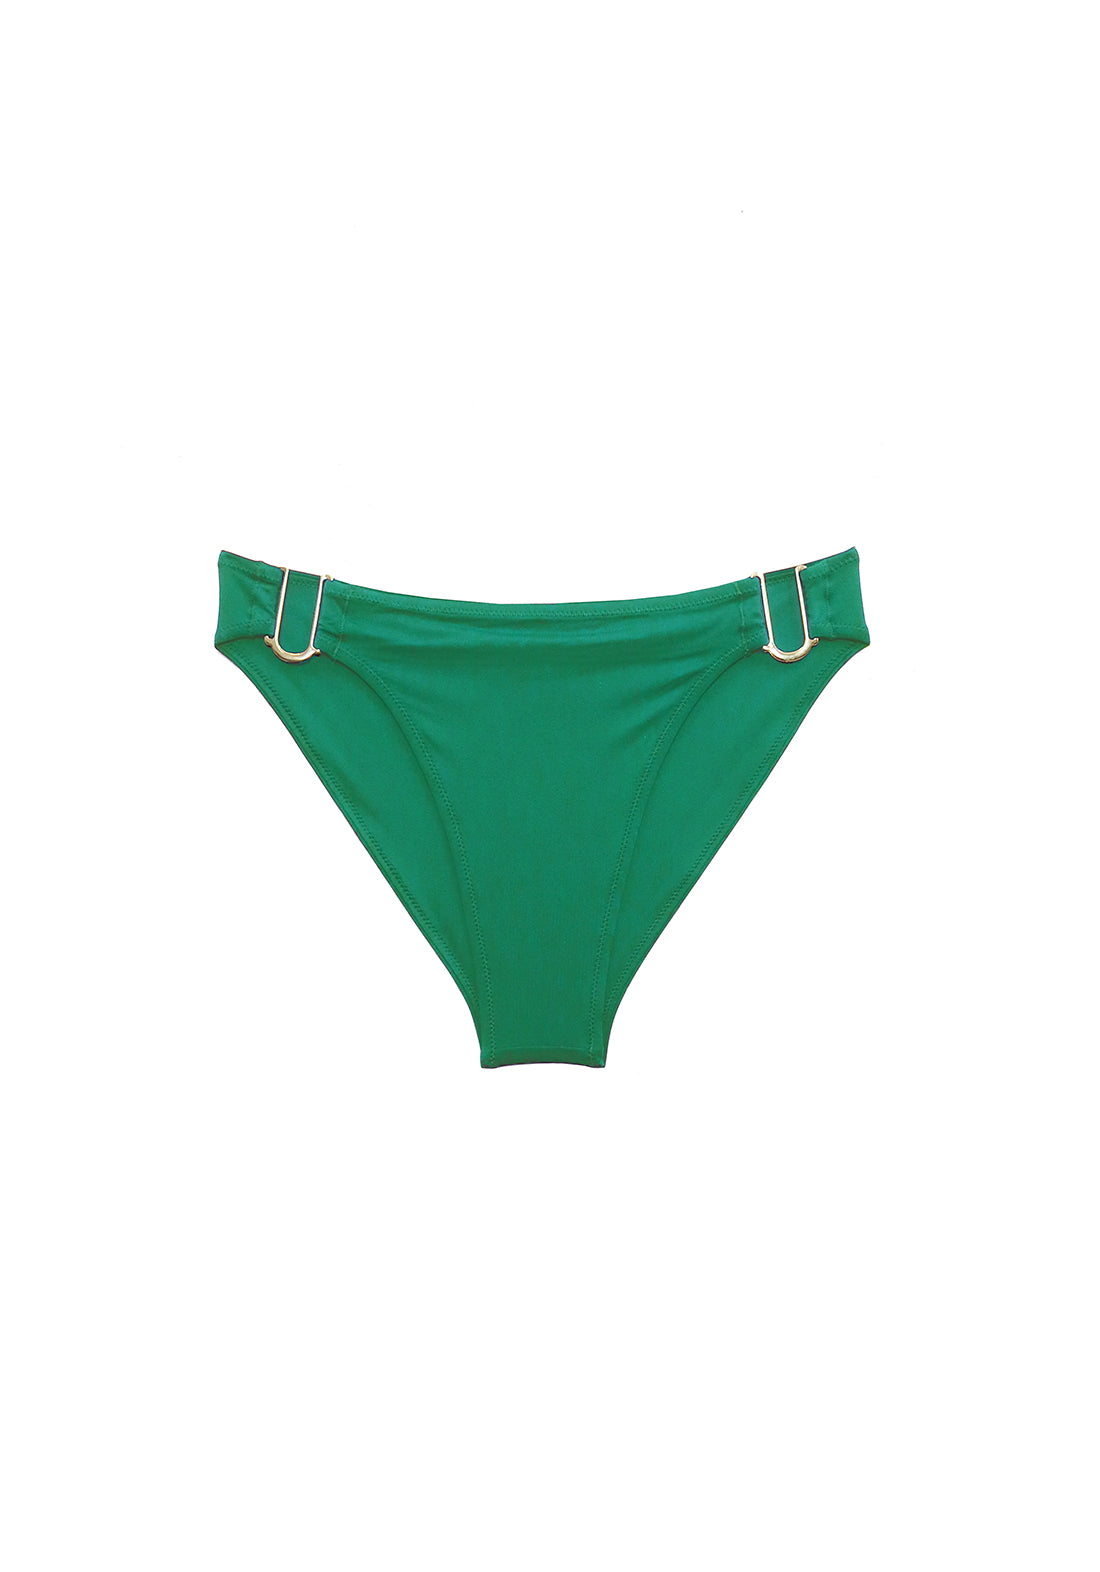 Rêve d'Été Bikini Brief in Green